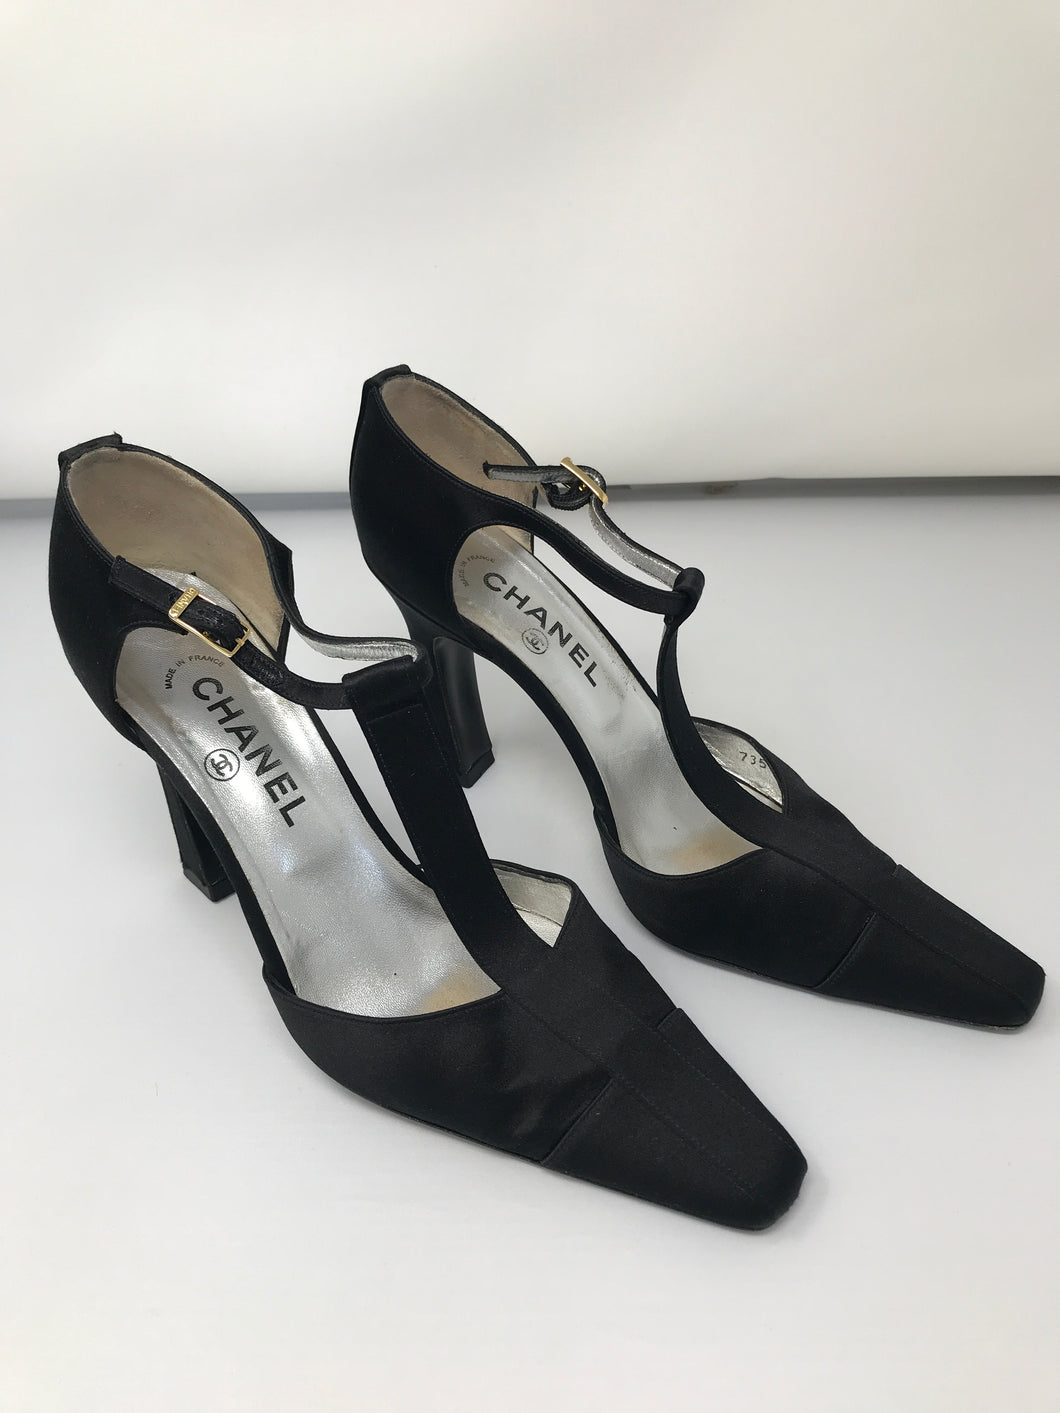 Chanel Black High Heel Shoes